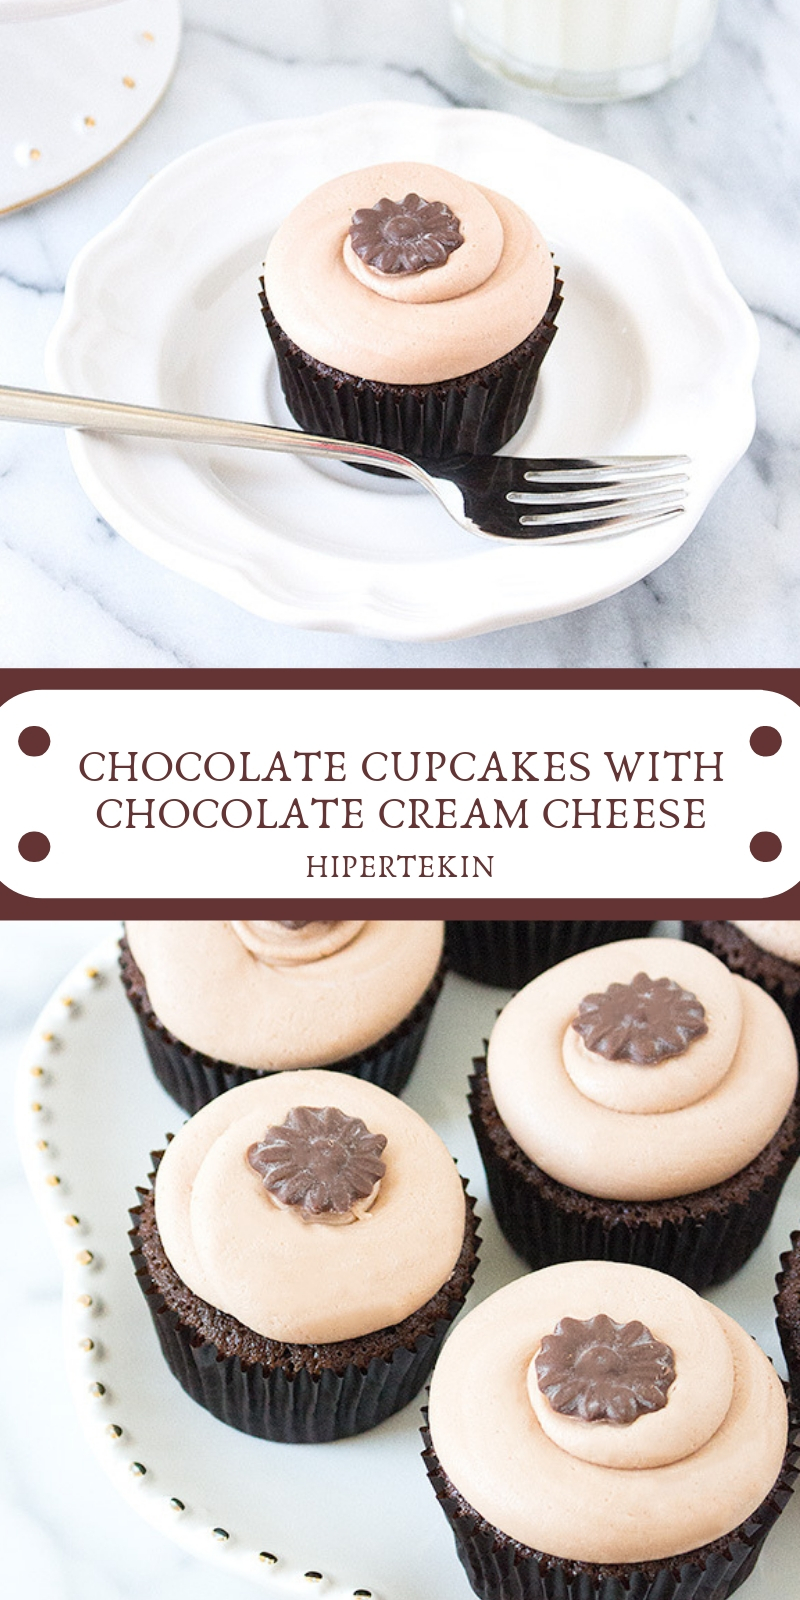 CHOCOLATE CUPCAKES WITH CHOCOLATE CREAM CHEESE